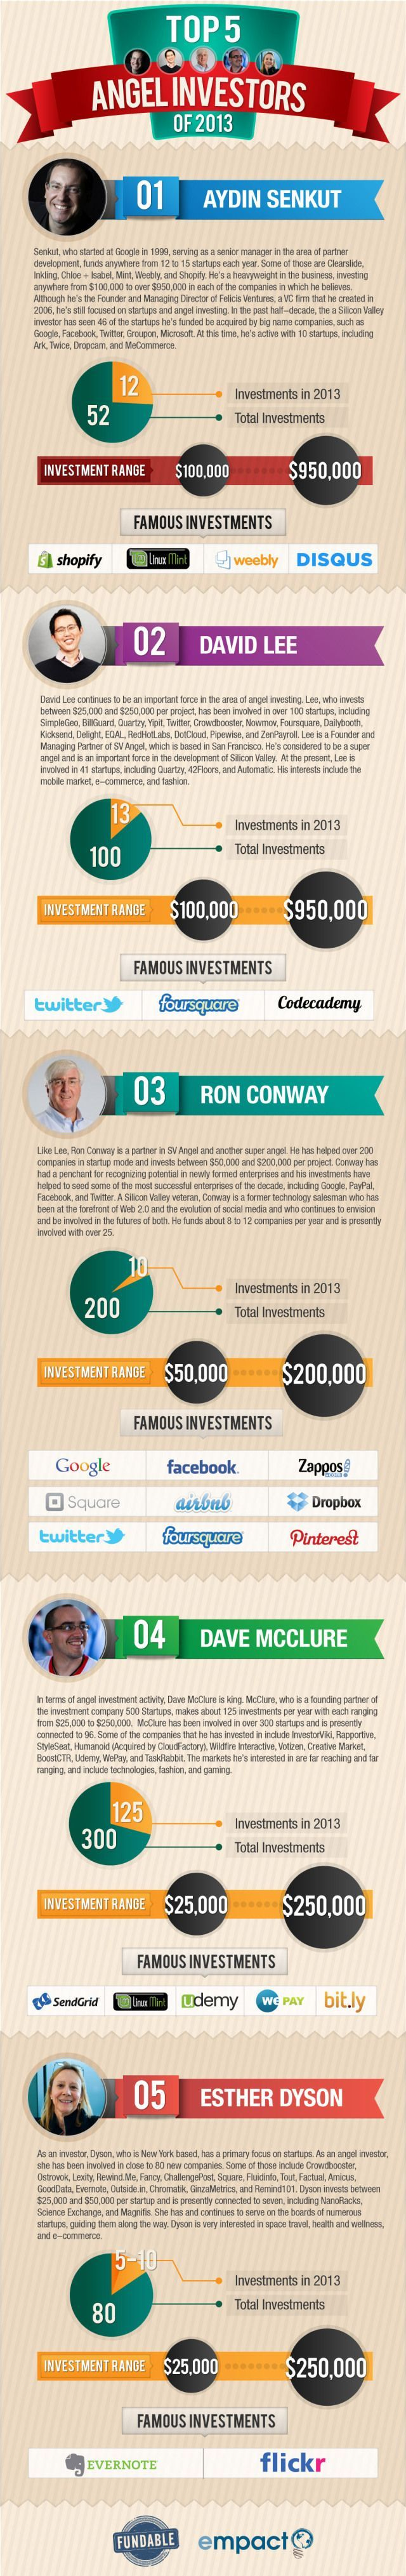 Top 5 angel investors of 2013 http://www.manhattanstreetcapital.com/